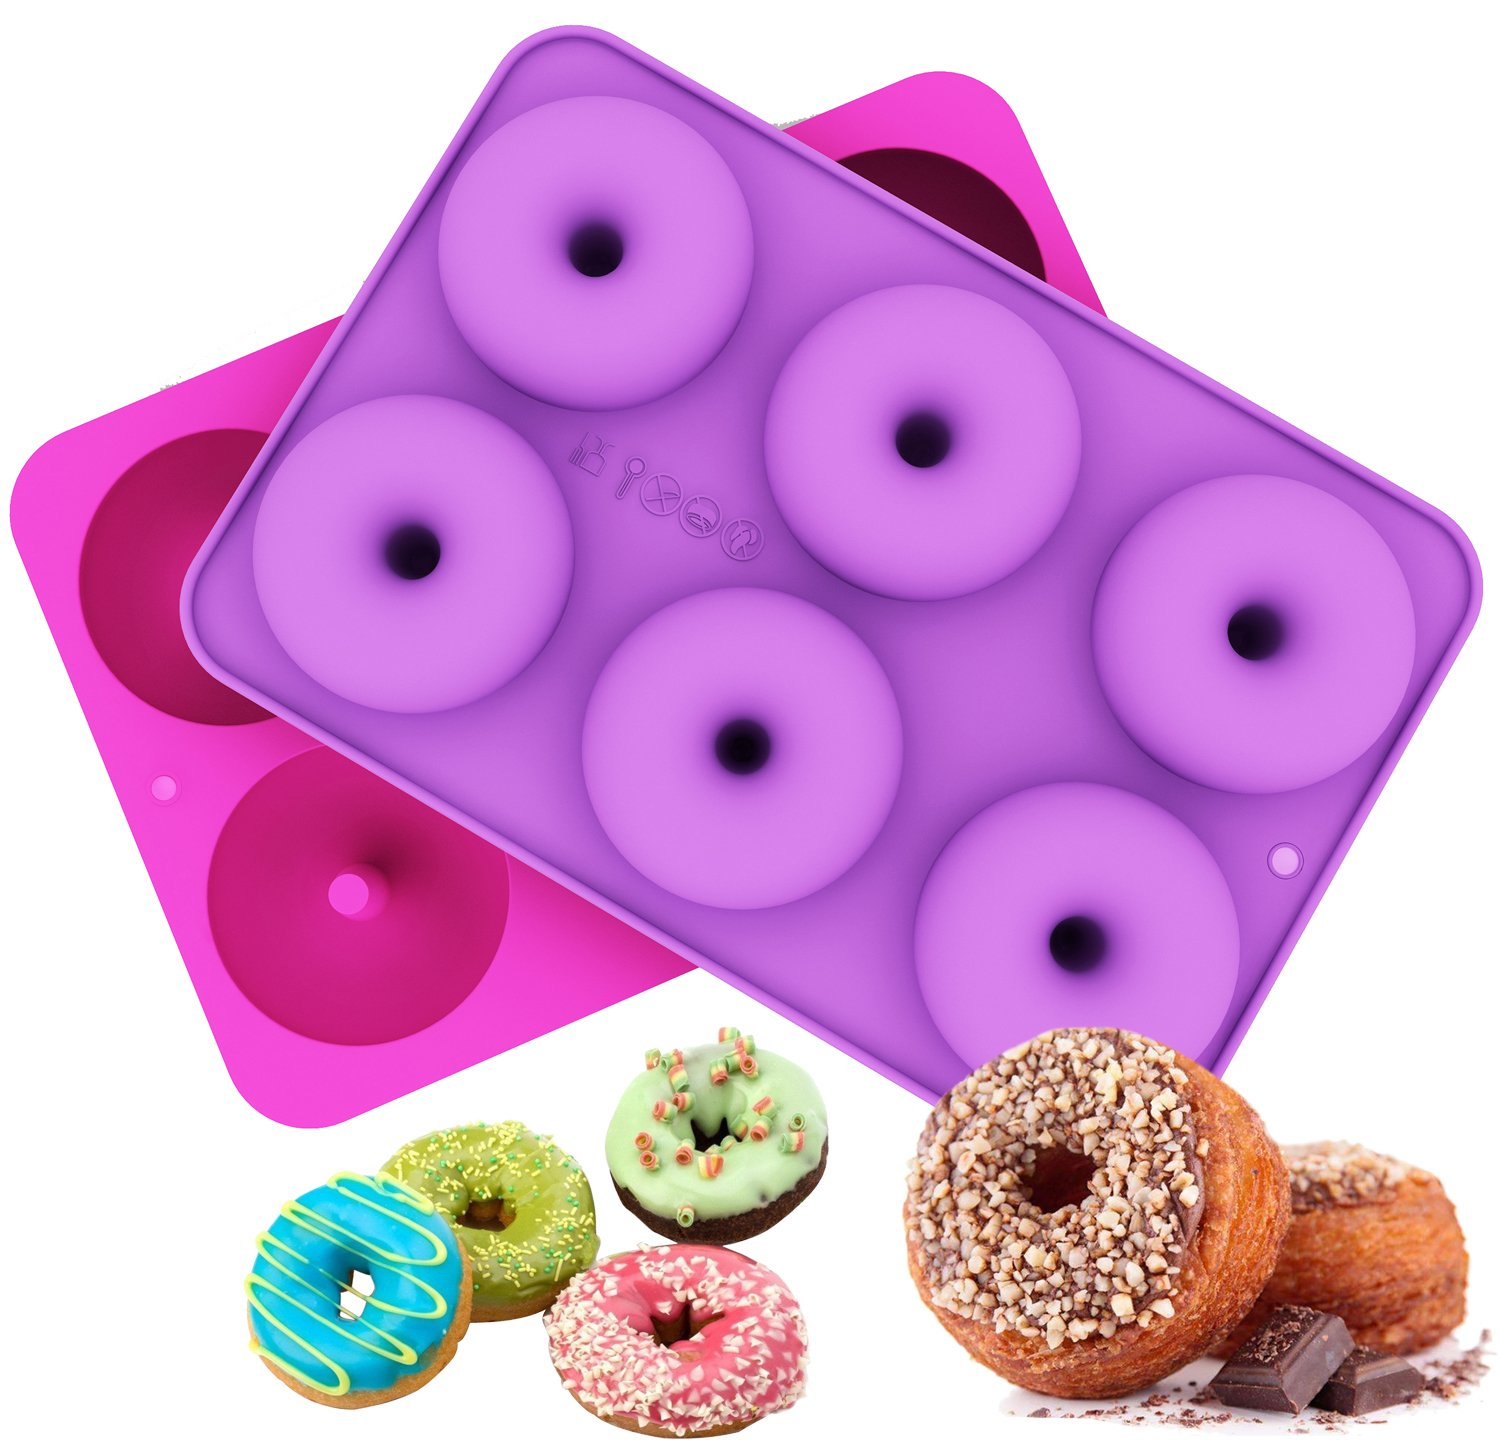 Ozera 2-Pack Donut Baking Pan, Non-Stick Donut Mold, Silicone Baking Molds for Donuts, Easy to Bake Full Size Perfect Shaped Doughnuts - Dishwasher, Oven, Microwave, Freezer Safe CCC-034-1